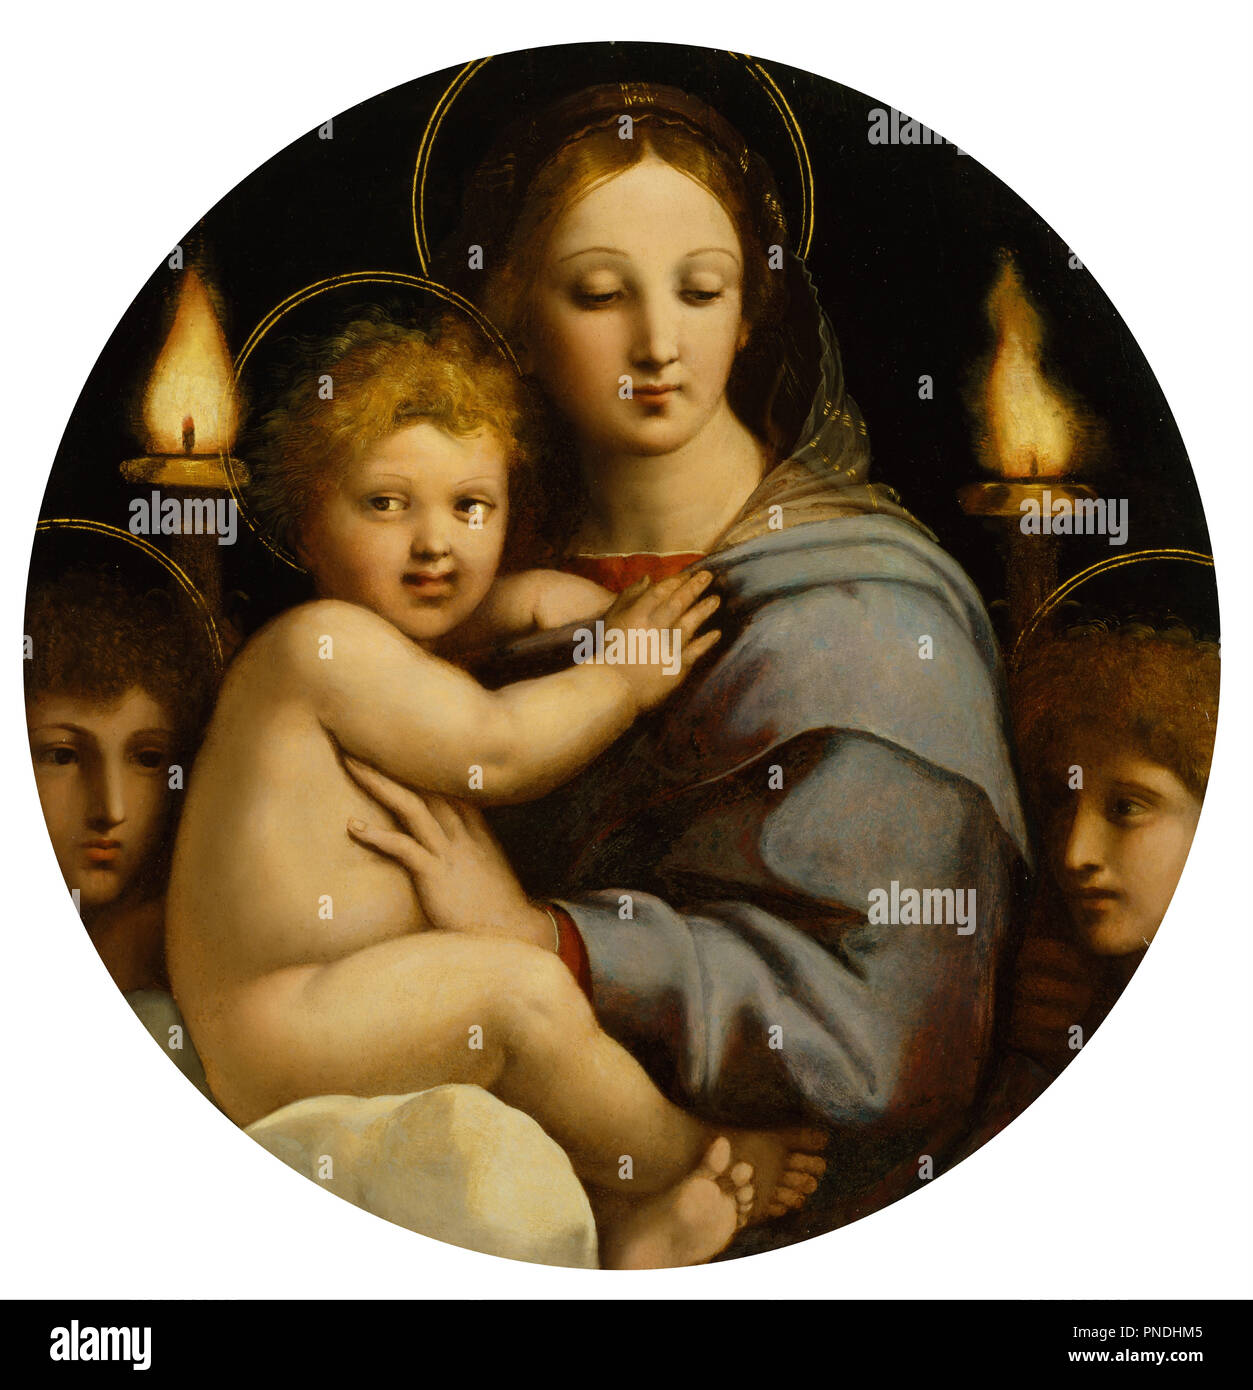 Madonna of the Candelabra. Date/Period: Ca. 1513 (Renaissance). Oil paintings; panel paintings; tondi. Oil on panel oil on panel. Height: 65.70 mm (2.58 in); Width: 64 mm (2.51 in). Author: RAPHAEL. Stock Photo